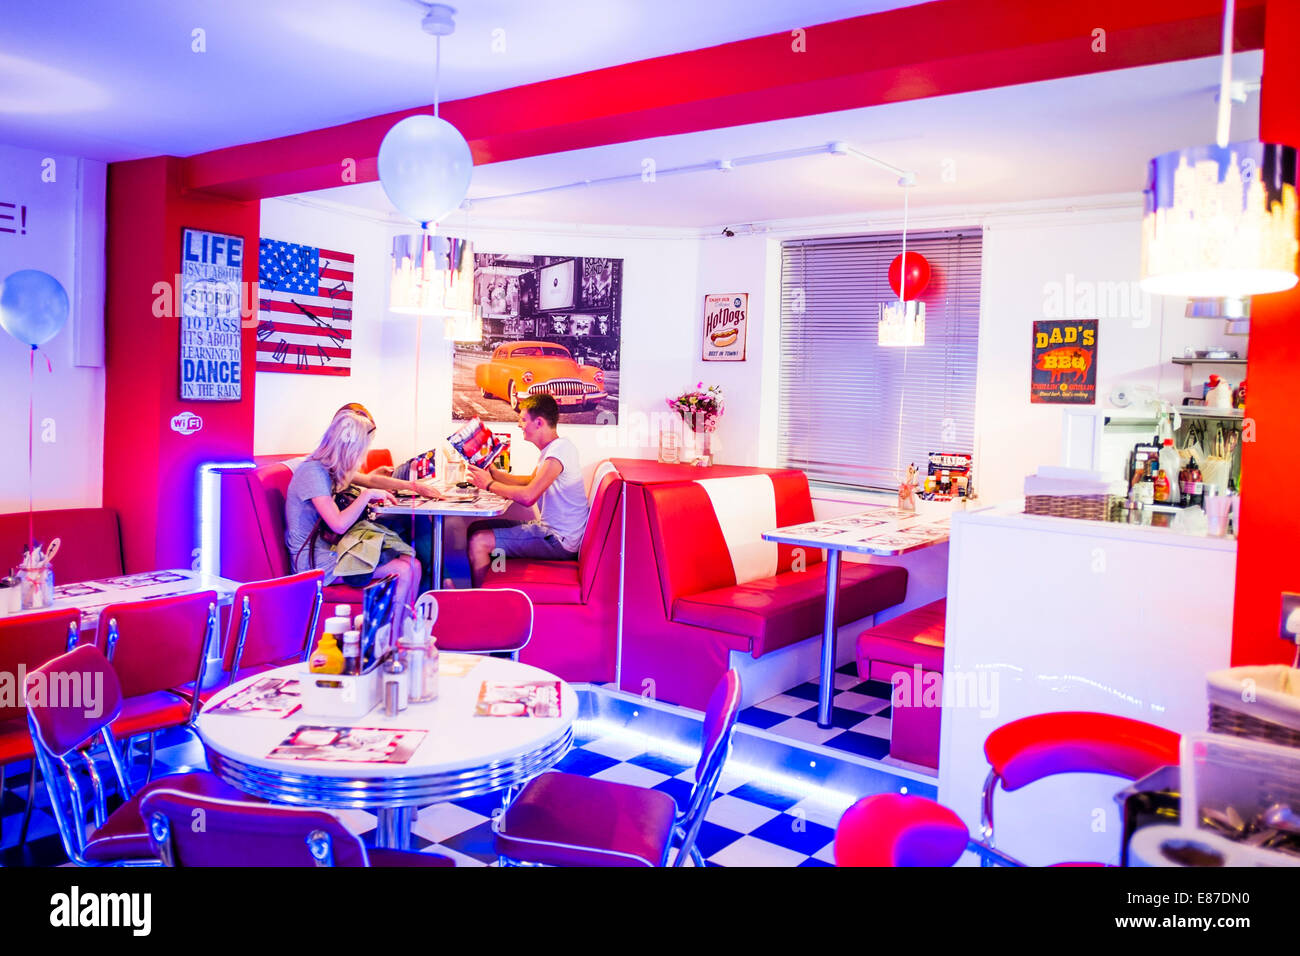 "interior: people eating in the ""aberyankee"" american diner style"